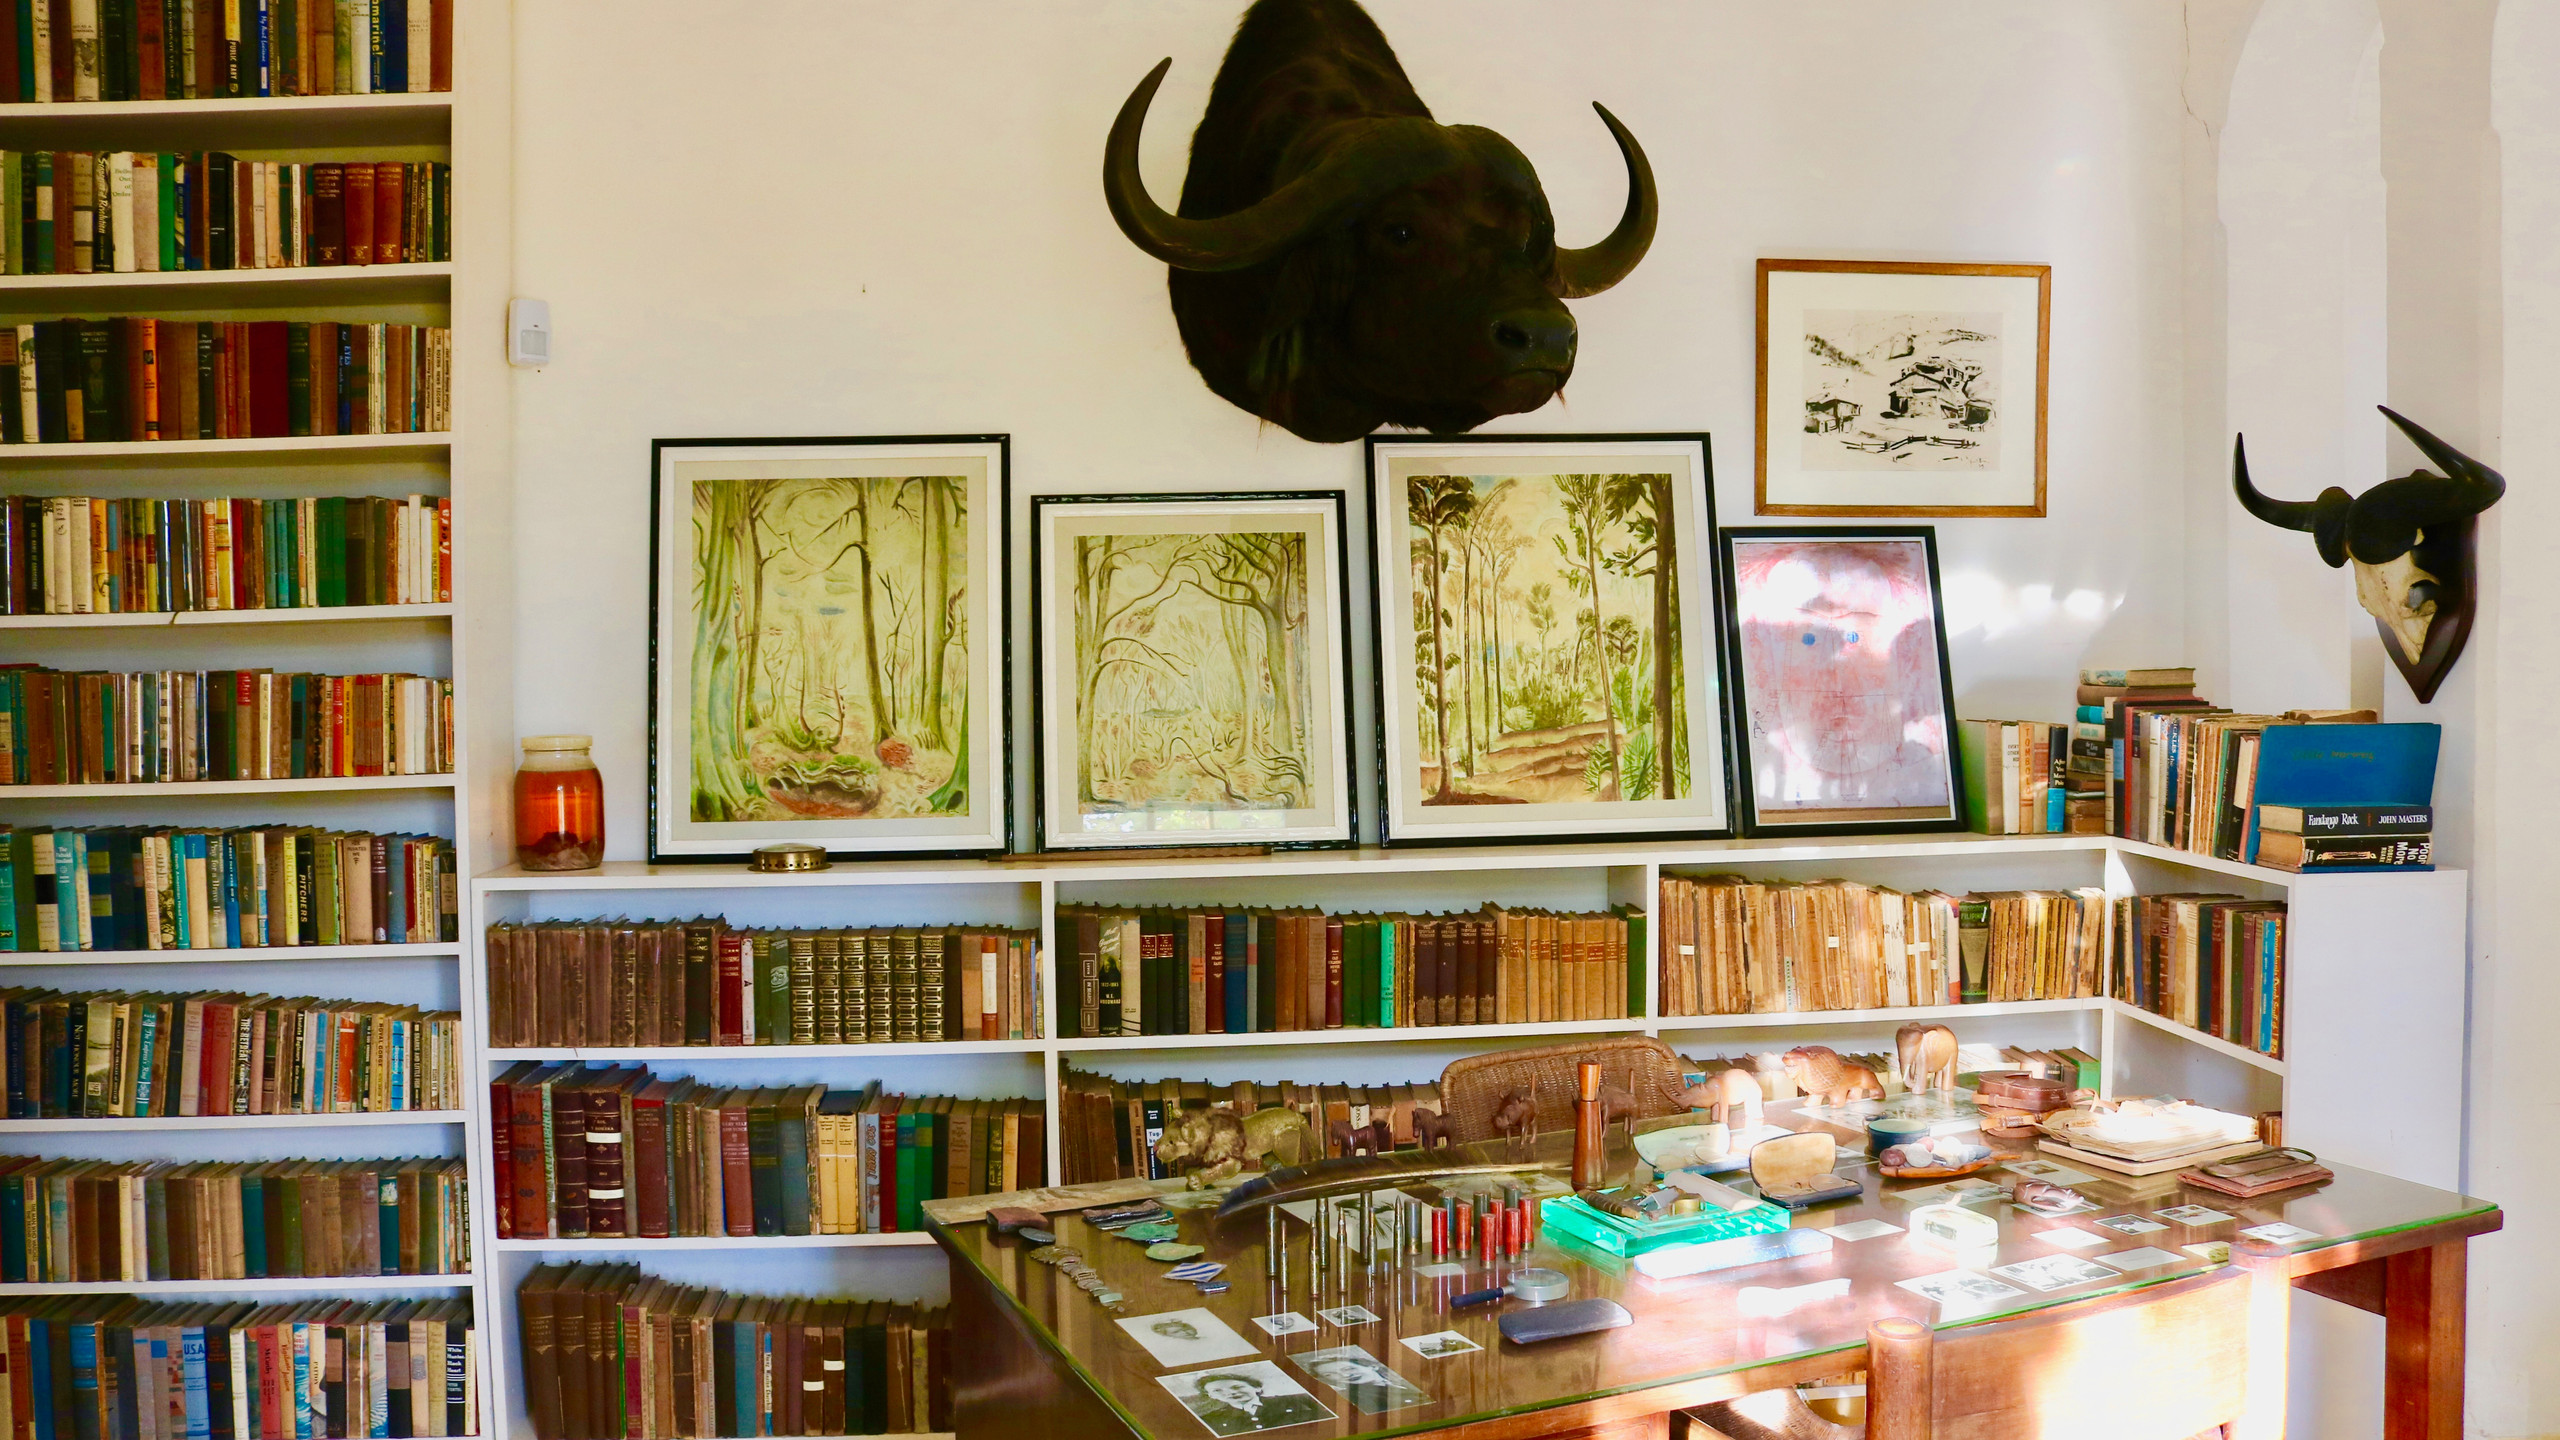 Desk in Ernest Hemingway's Finca Vigia home surrounded by colorful books.